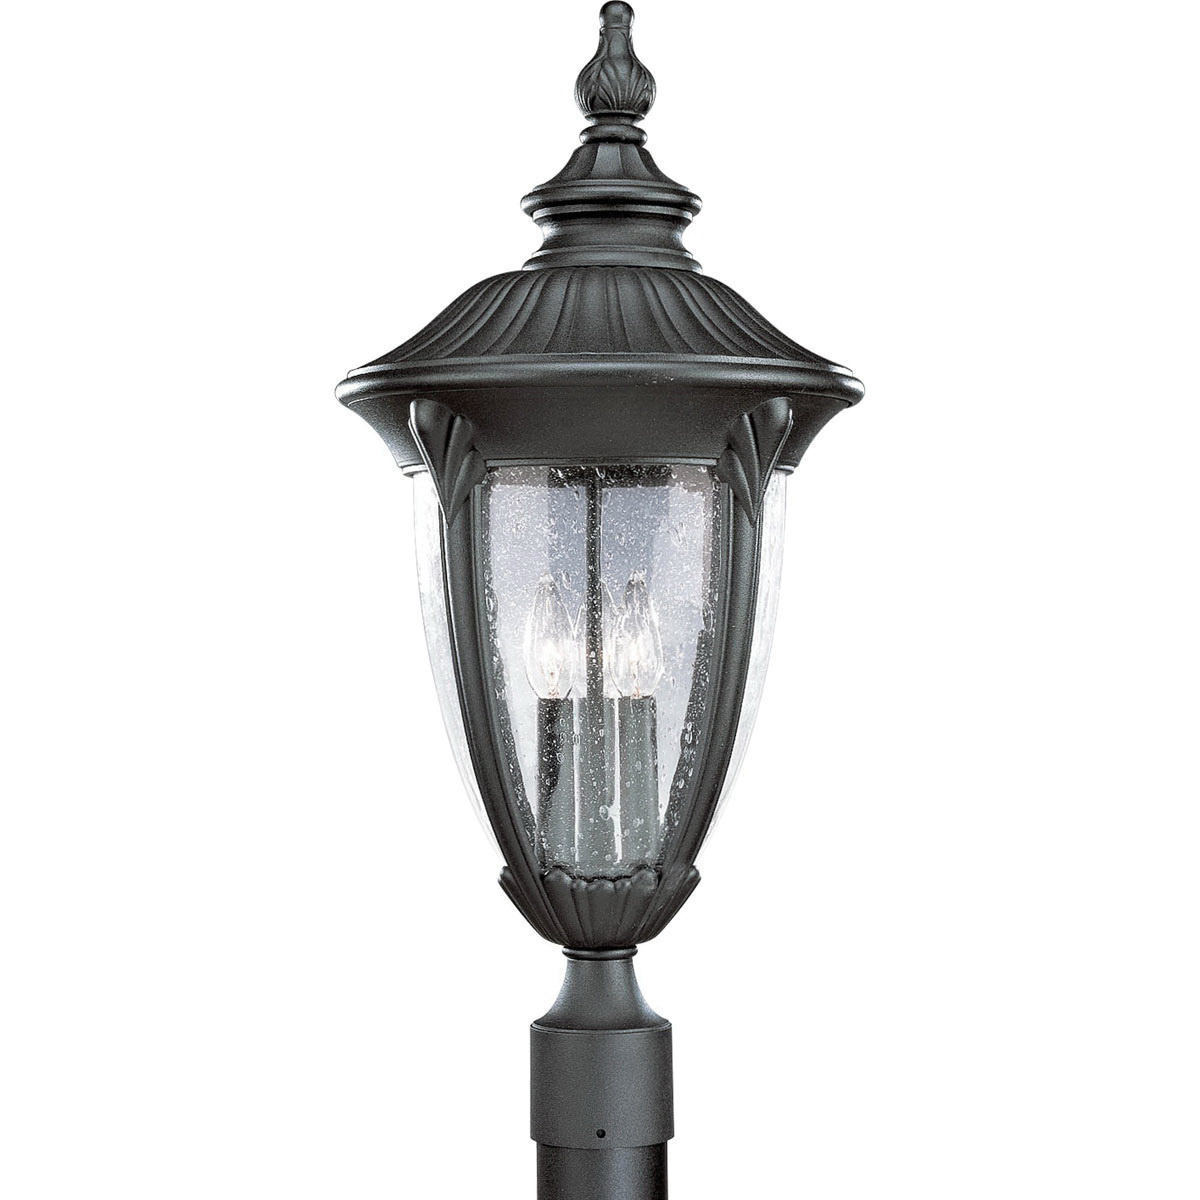 Progress Lighting P5420-31 3-Light Outdoor Post Lantern 60 Watt 120 Volt Textured Black Painted Meridian